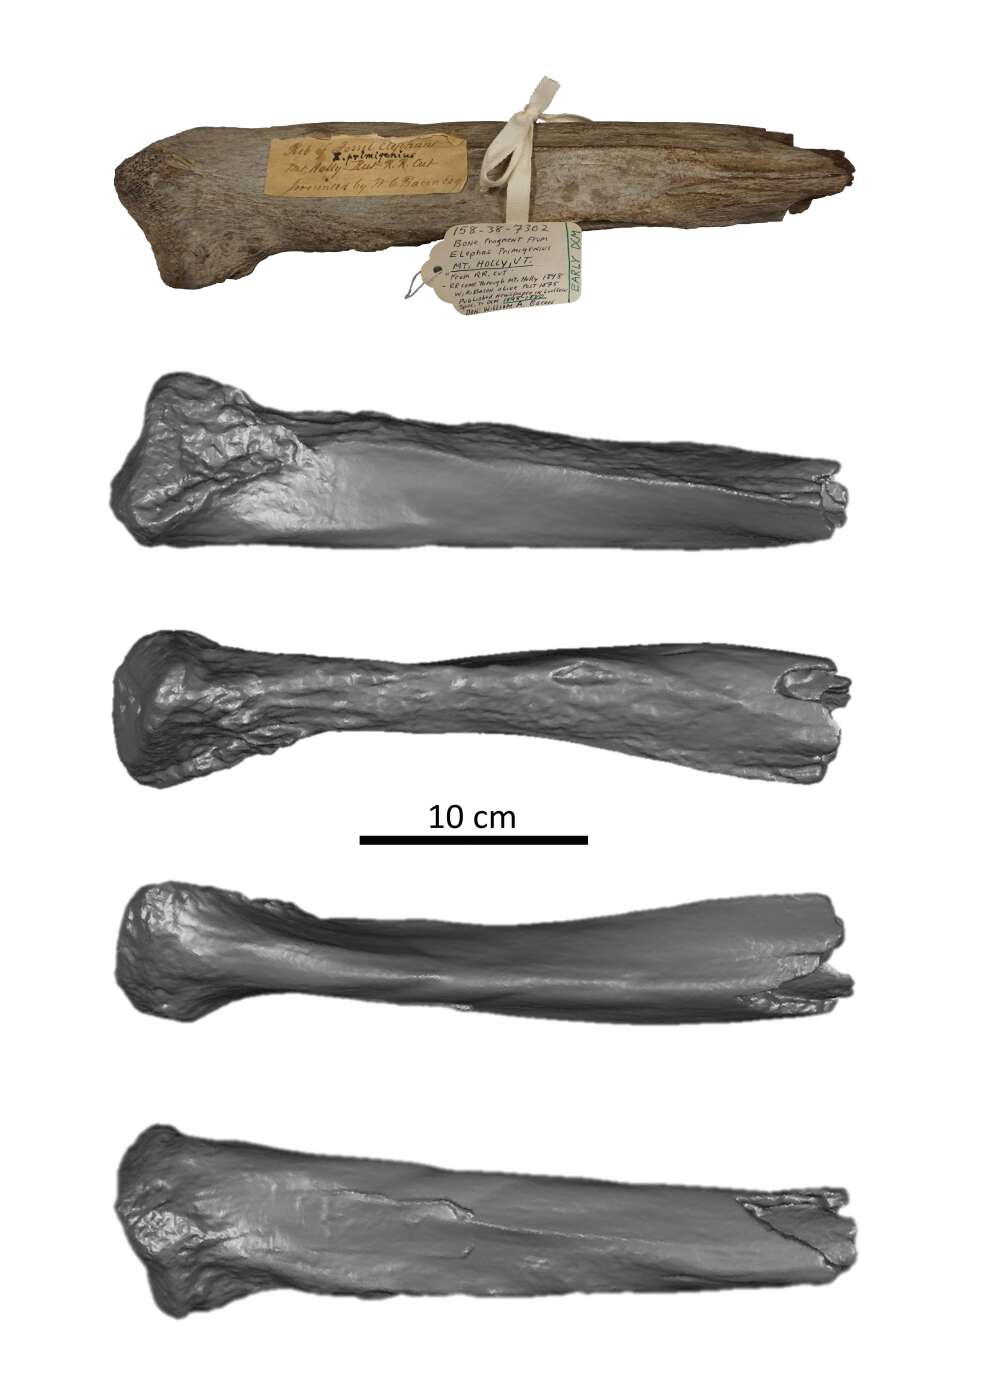 Photo and 3D model of Mount Holly mammoth rib fragment